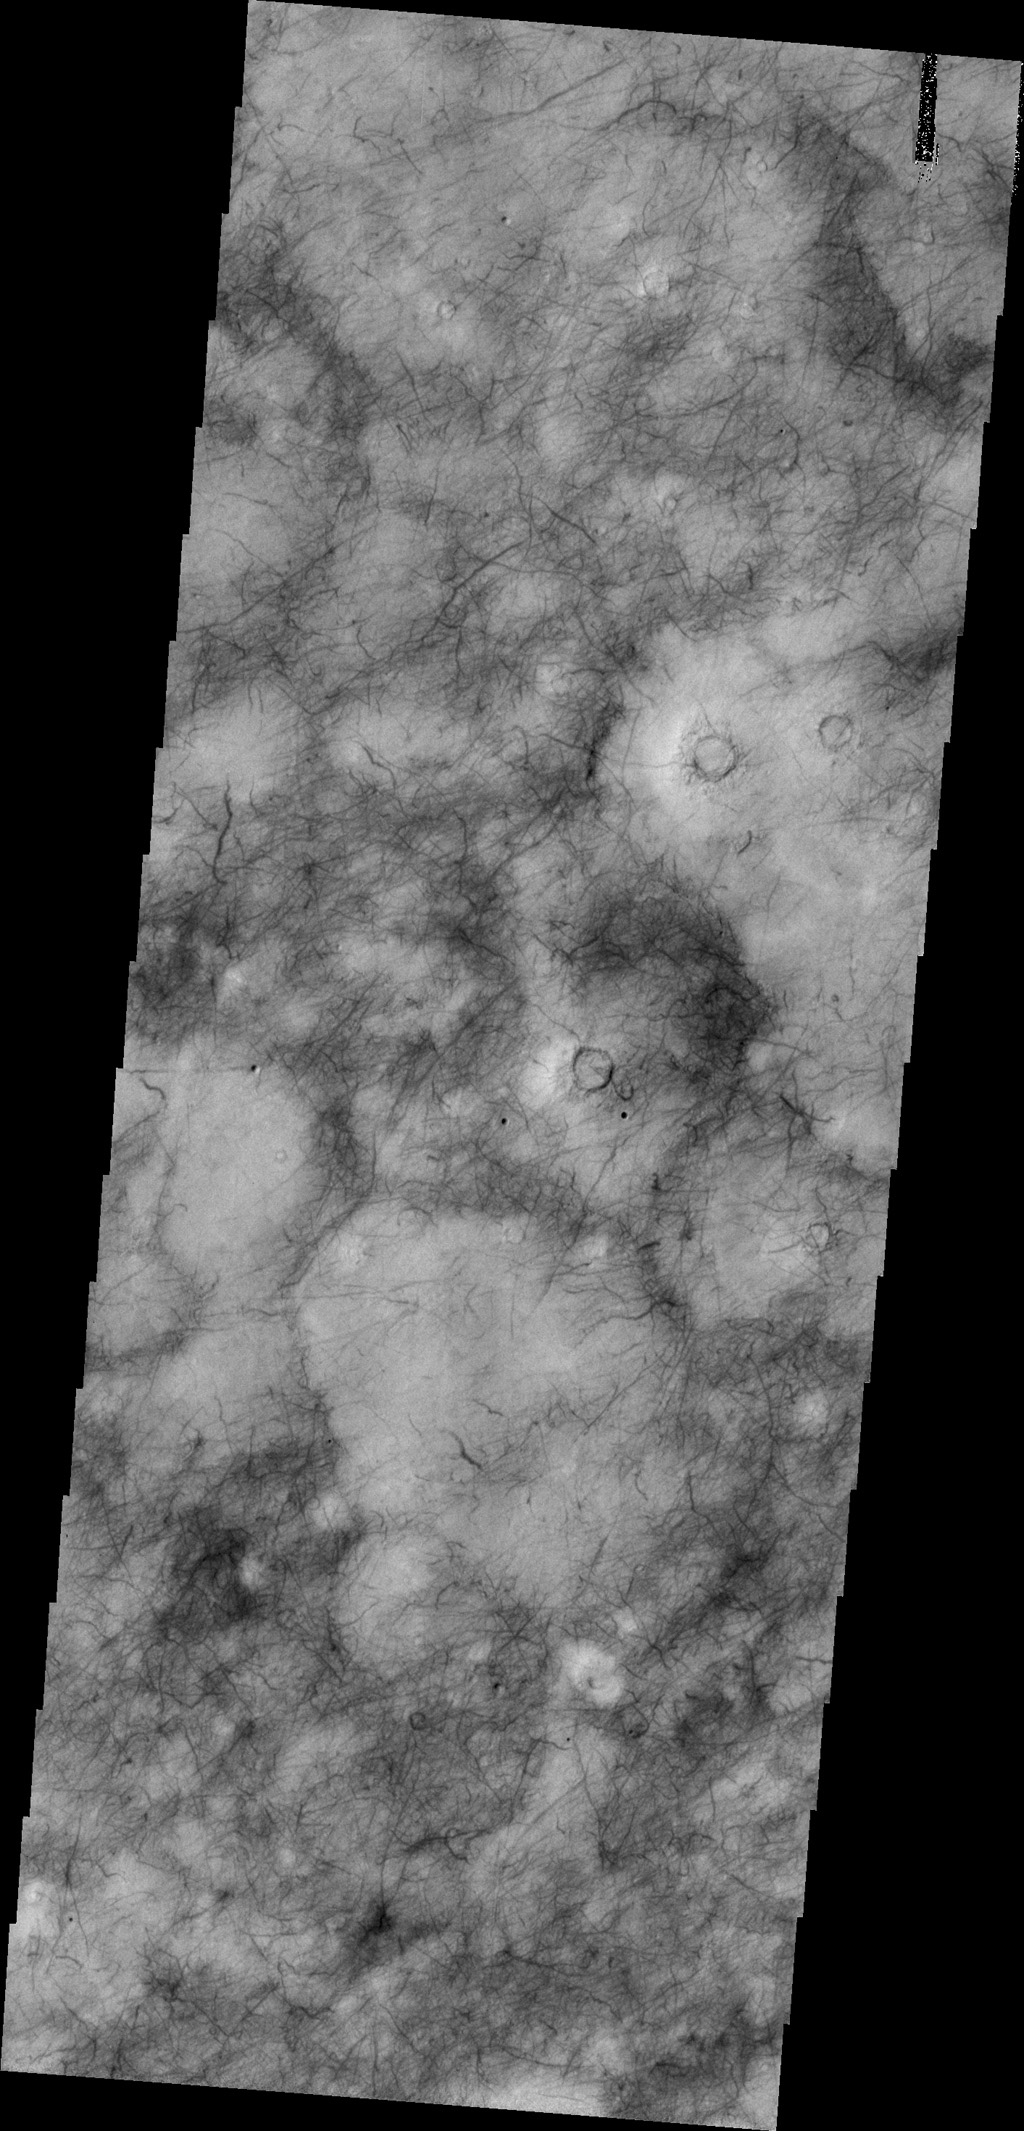 The dark surface markings of Utopia Planitia are thought to be caused by dust devils as seen by NASA's 2001 Mars Odyssey spacecraft.